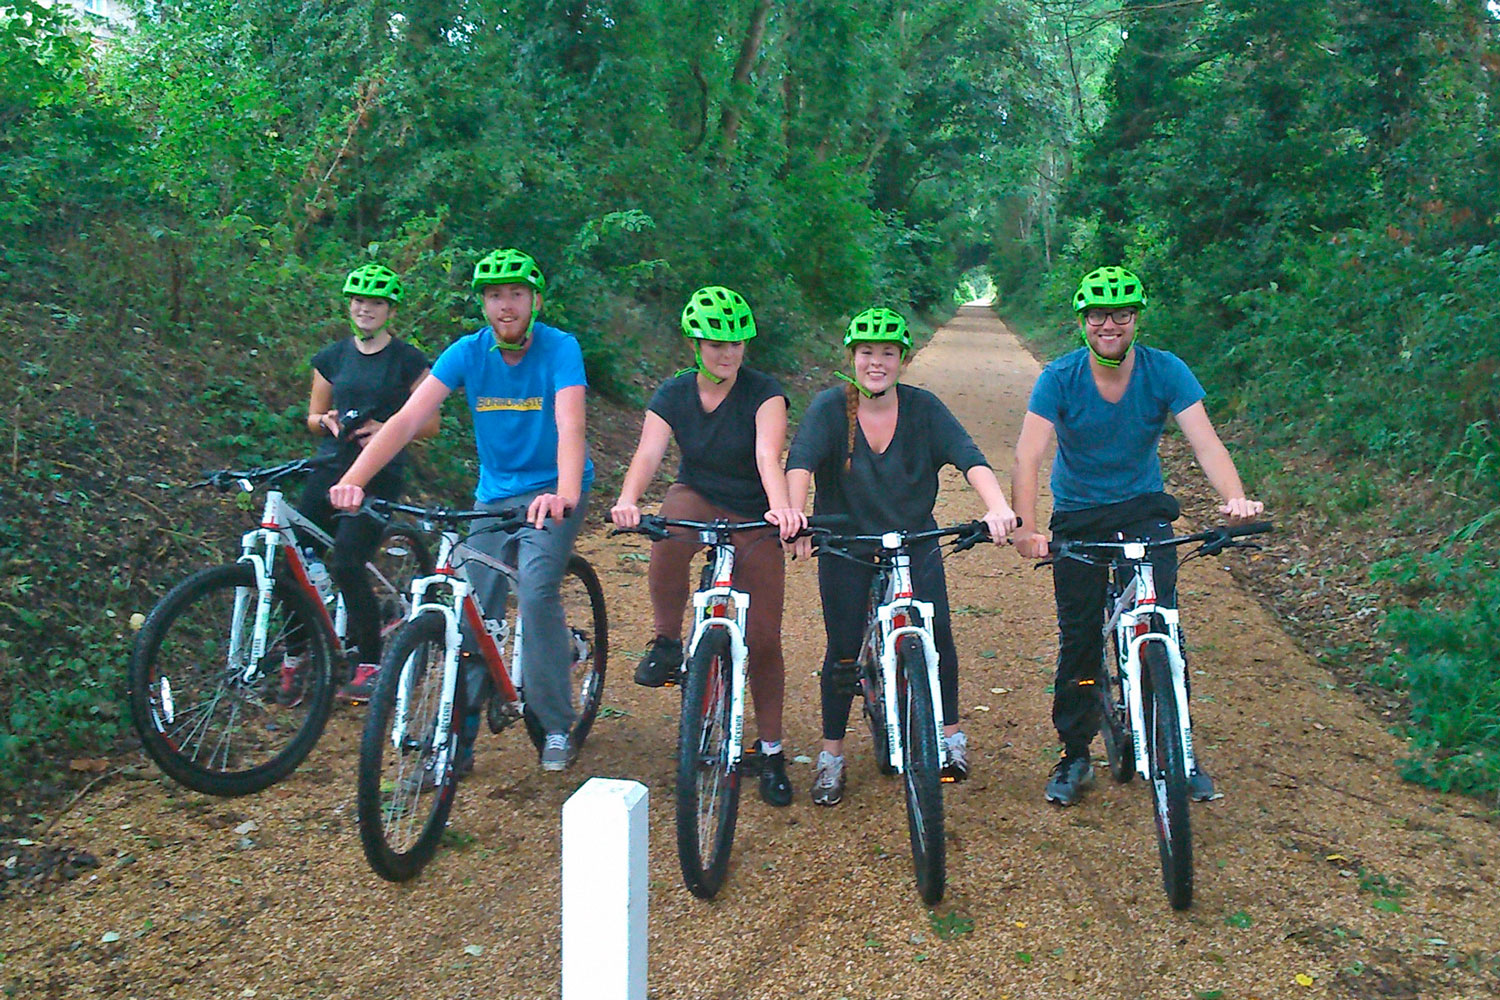 Wight Cycle Training tours